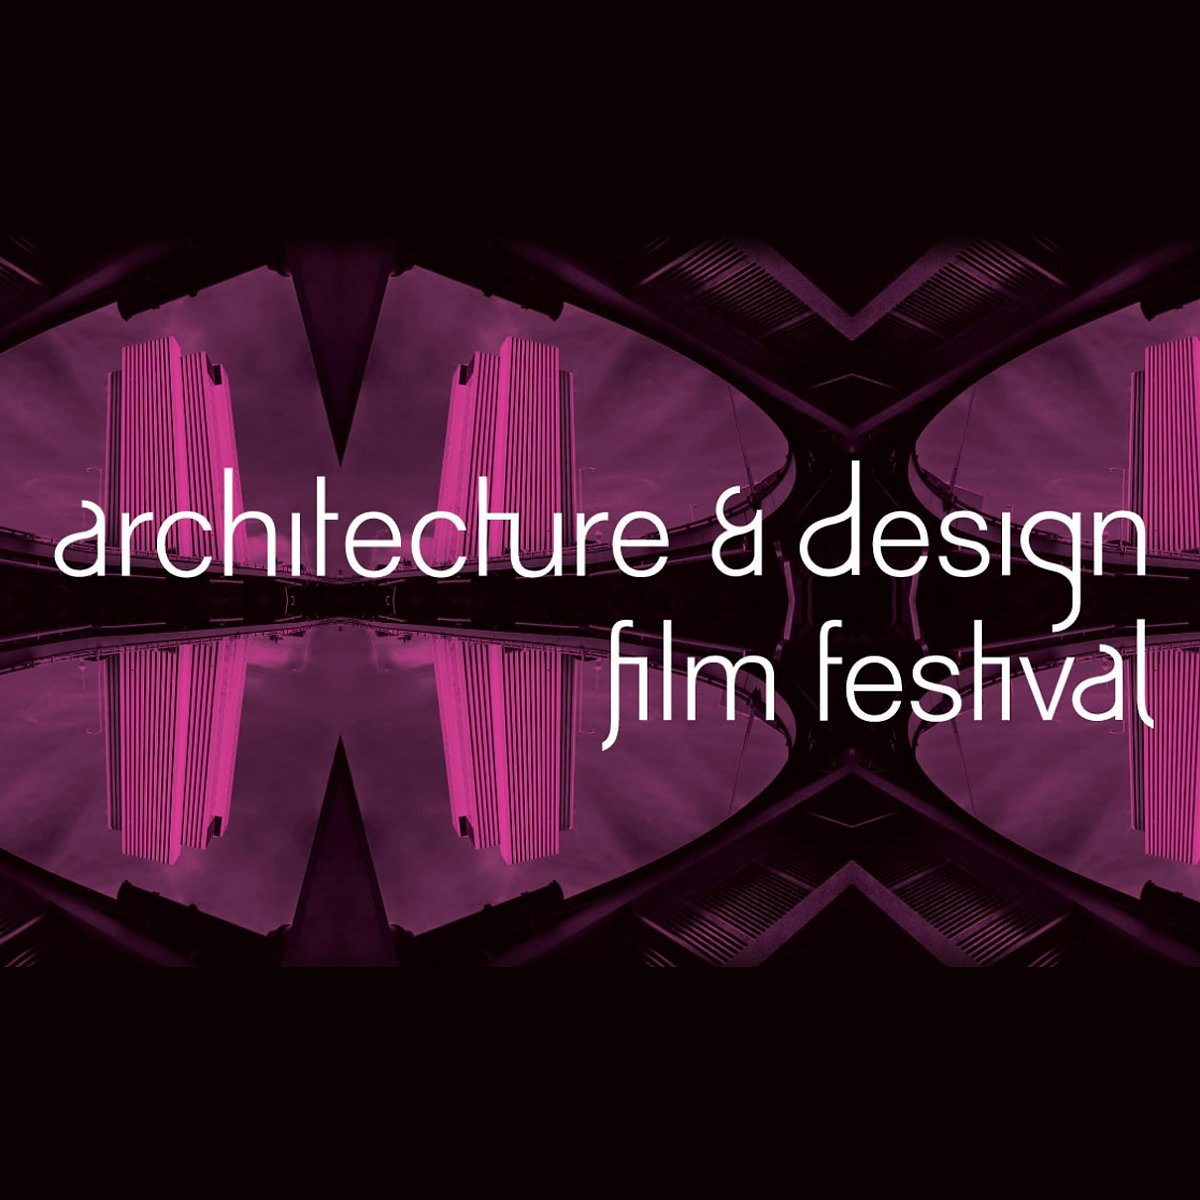 ADFF Launches 11th Season with Film on Legendary Female Architects Who Shaped the Cities